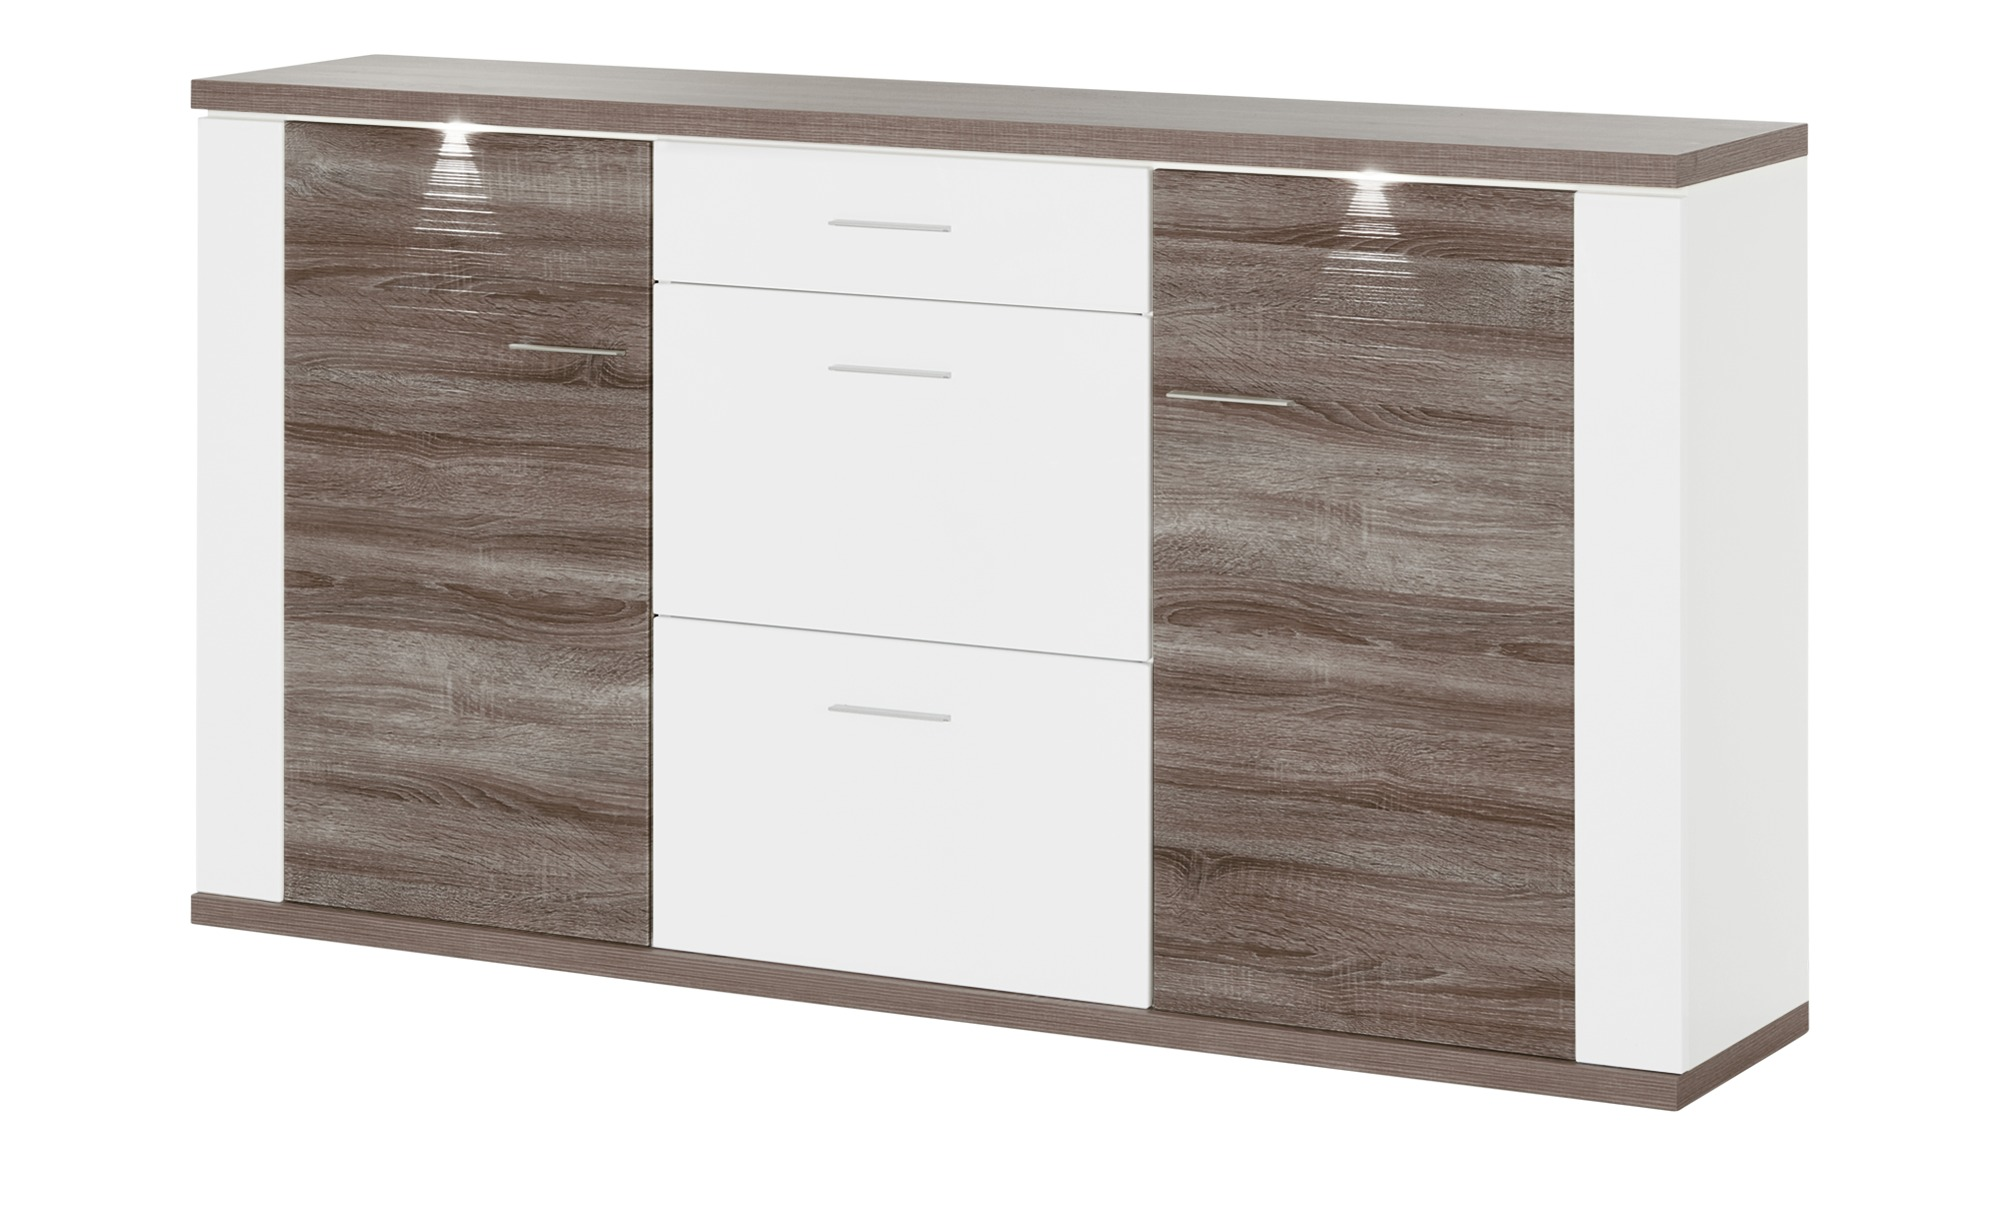 uno sideboard titan breite 194 cm h he 108 cm online. Black Bedroom Furniture Sets. Home Design Ideas